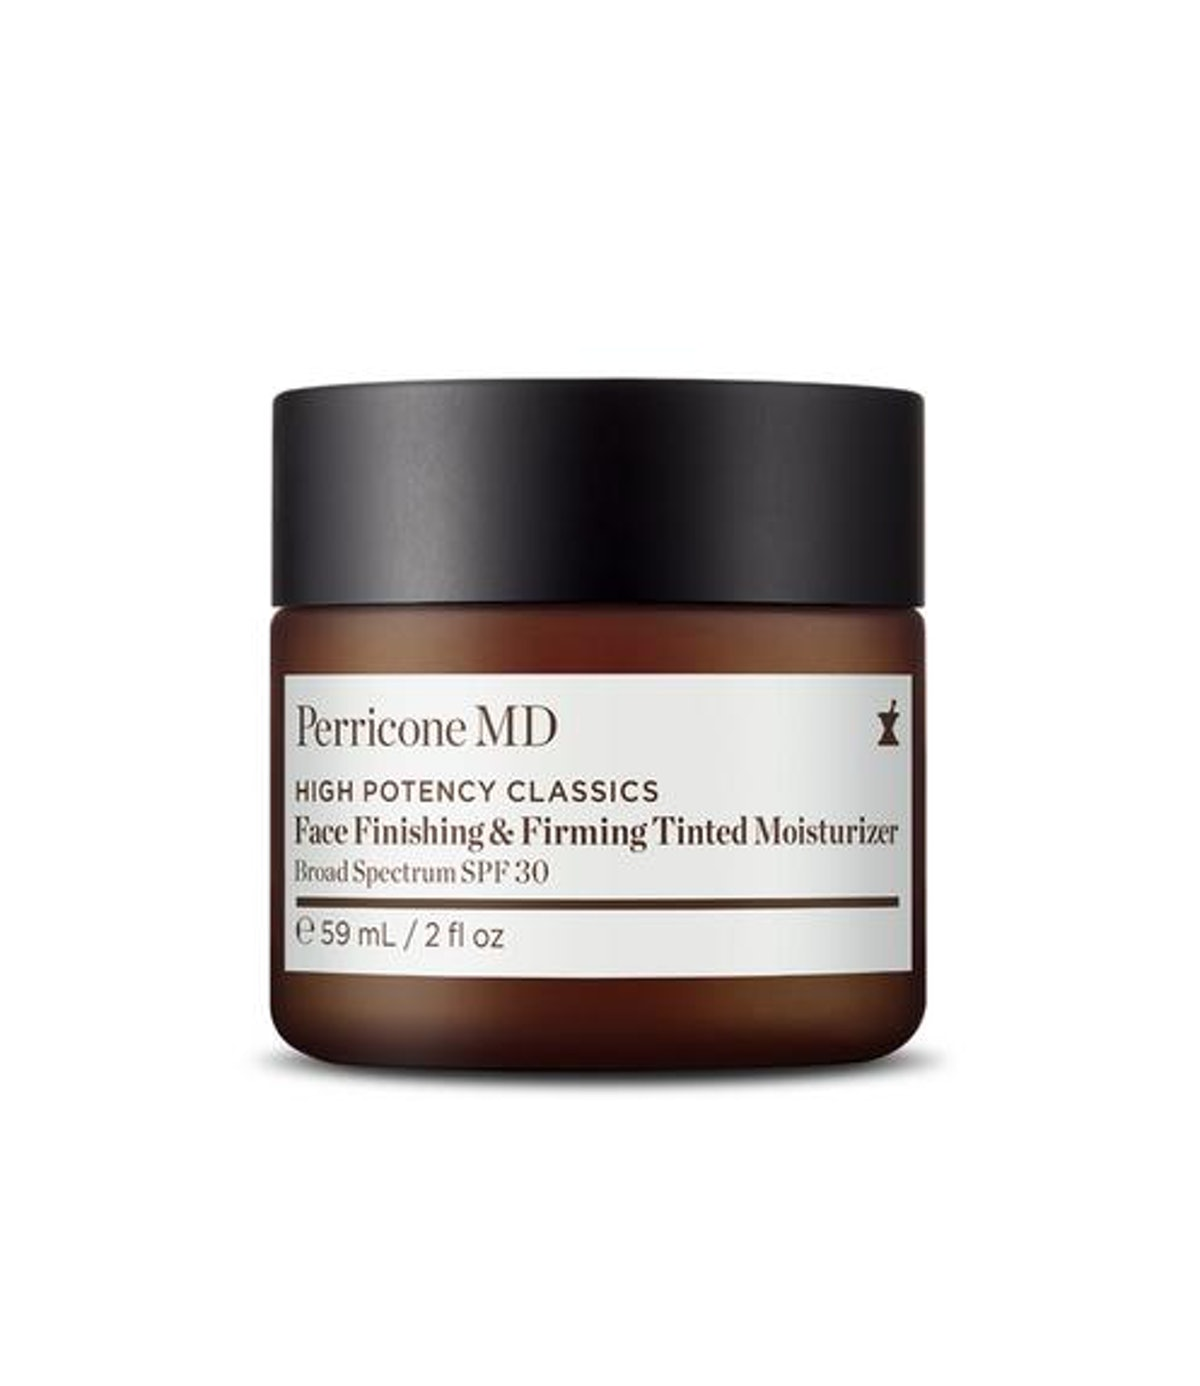 Face Finishing & Firming Tinted Moisturizer Broad Spectrum SPF 30